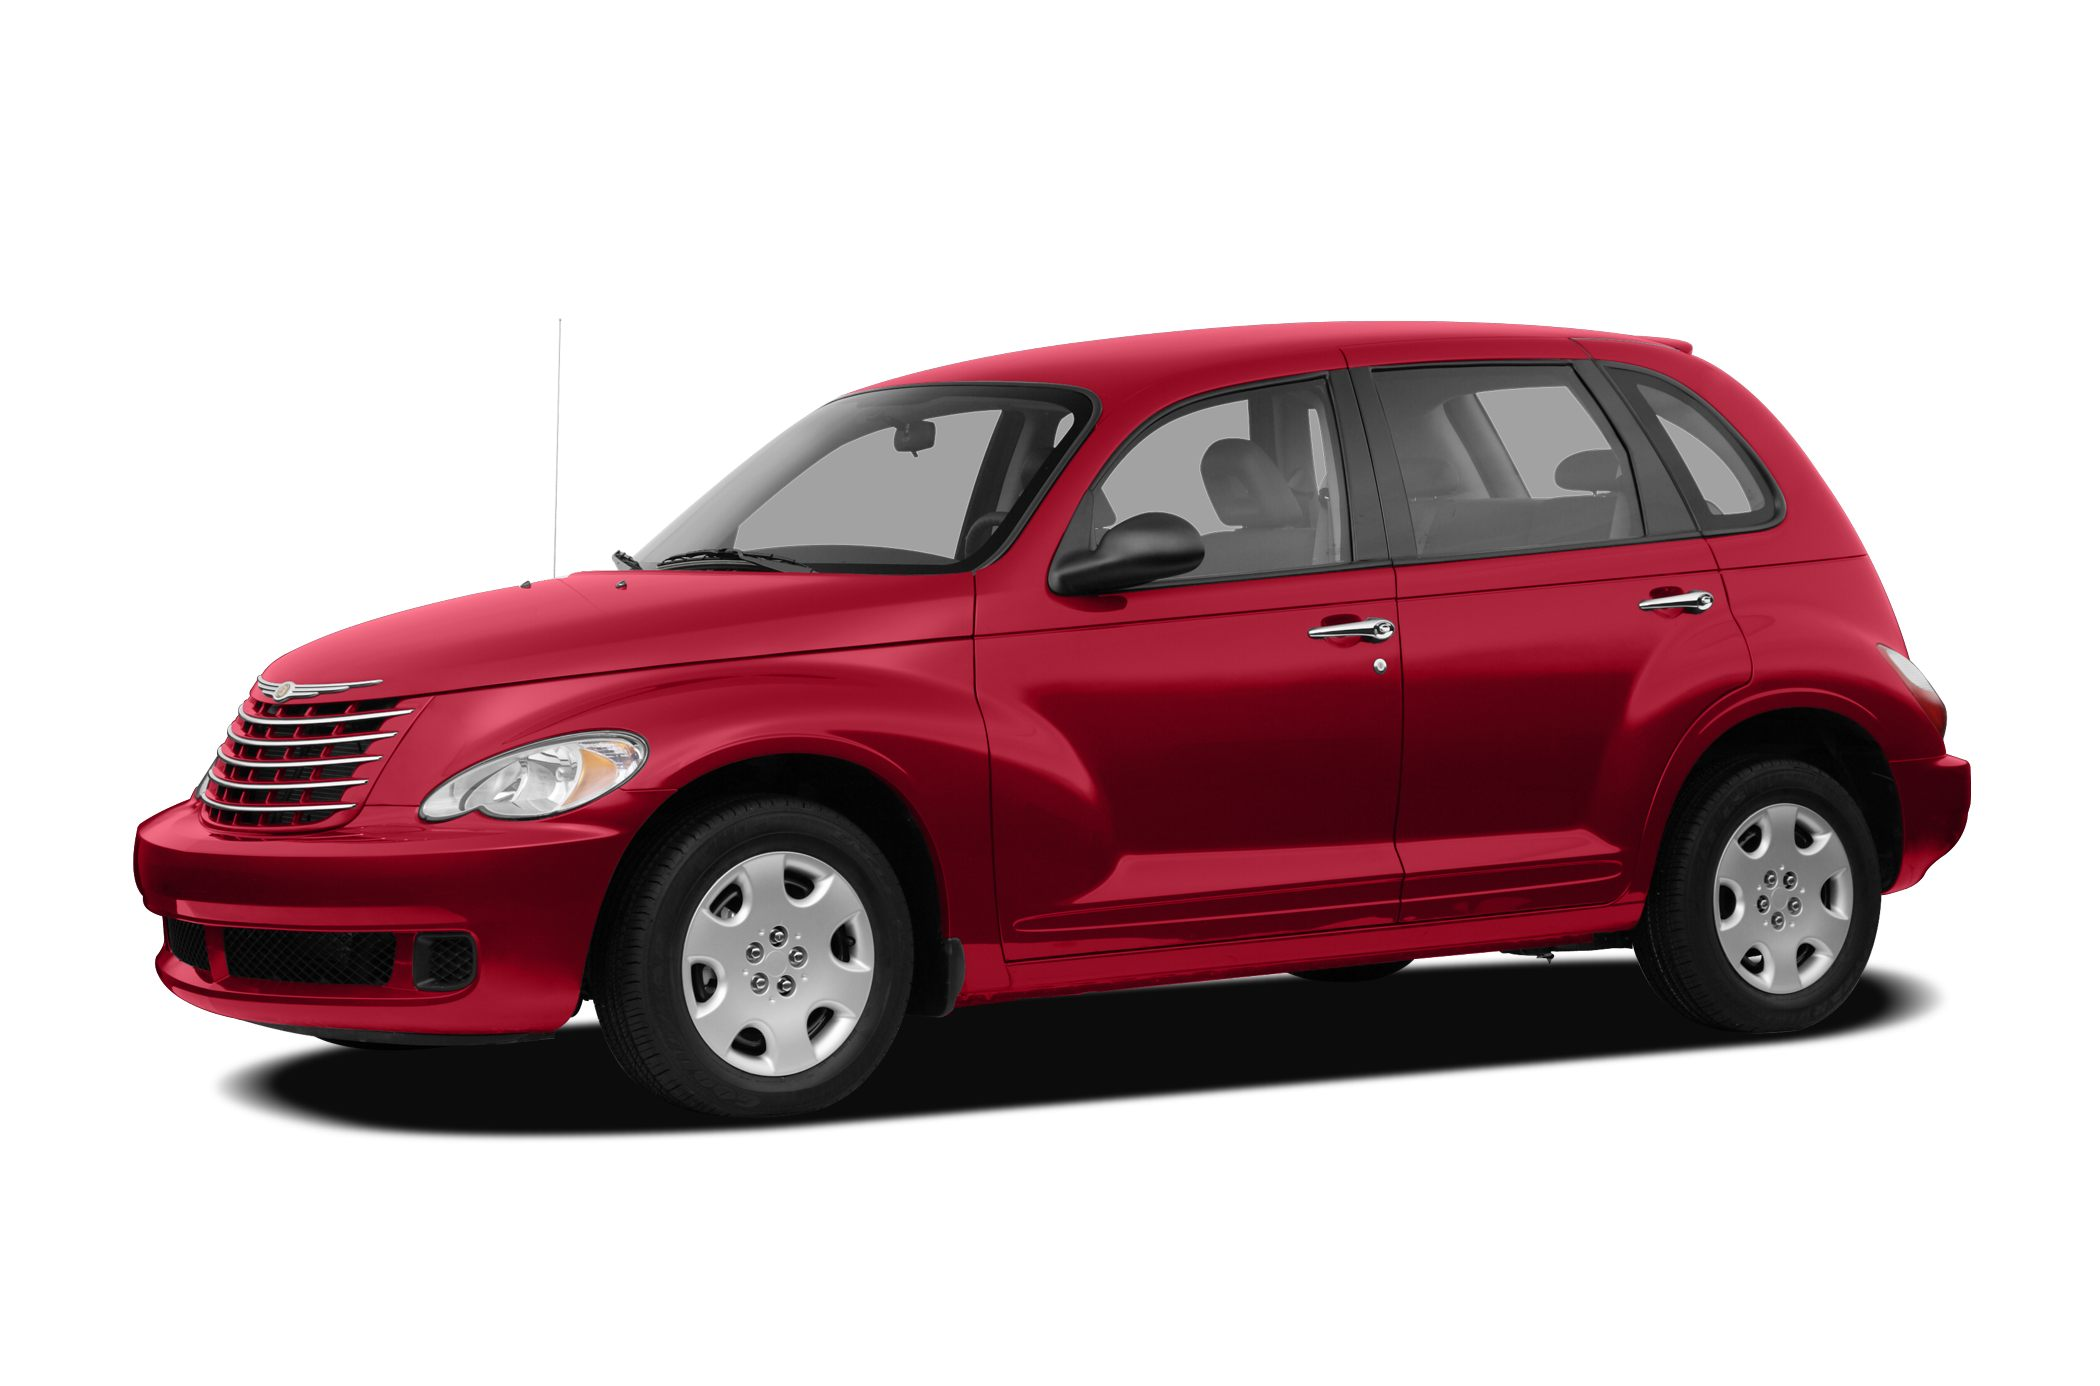 2007 Chrysler PT Cruiser Limited Wagon for sale in Knoxville for $4,990 with 151,839 miles.